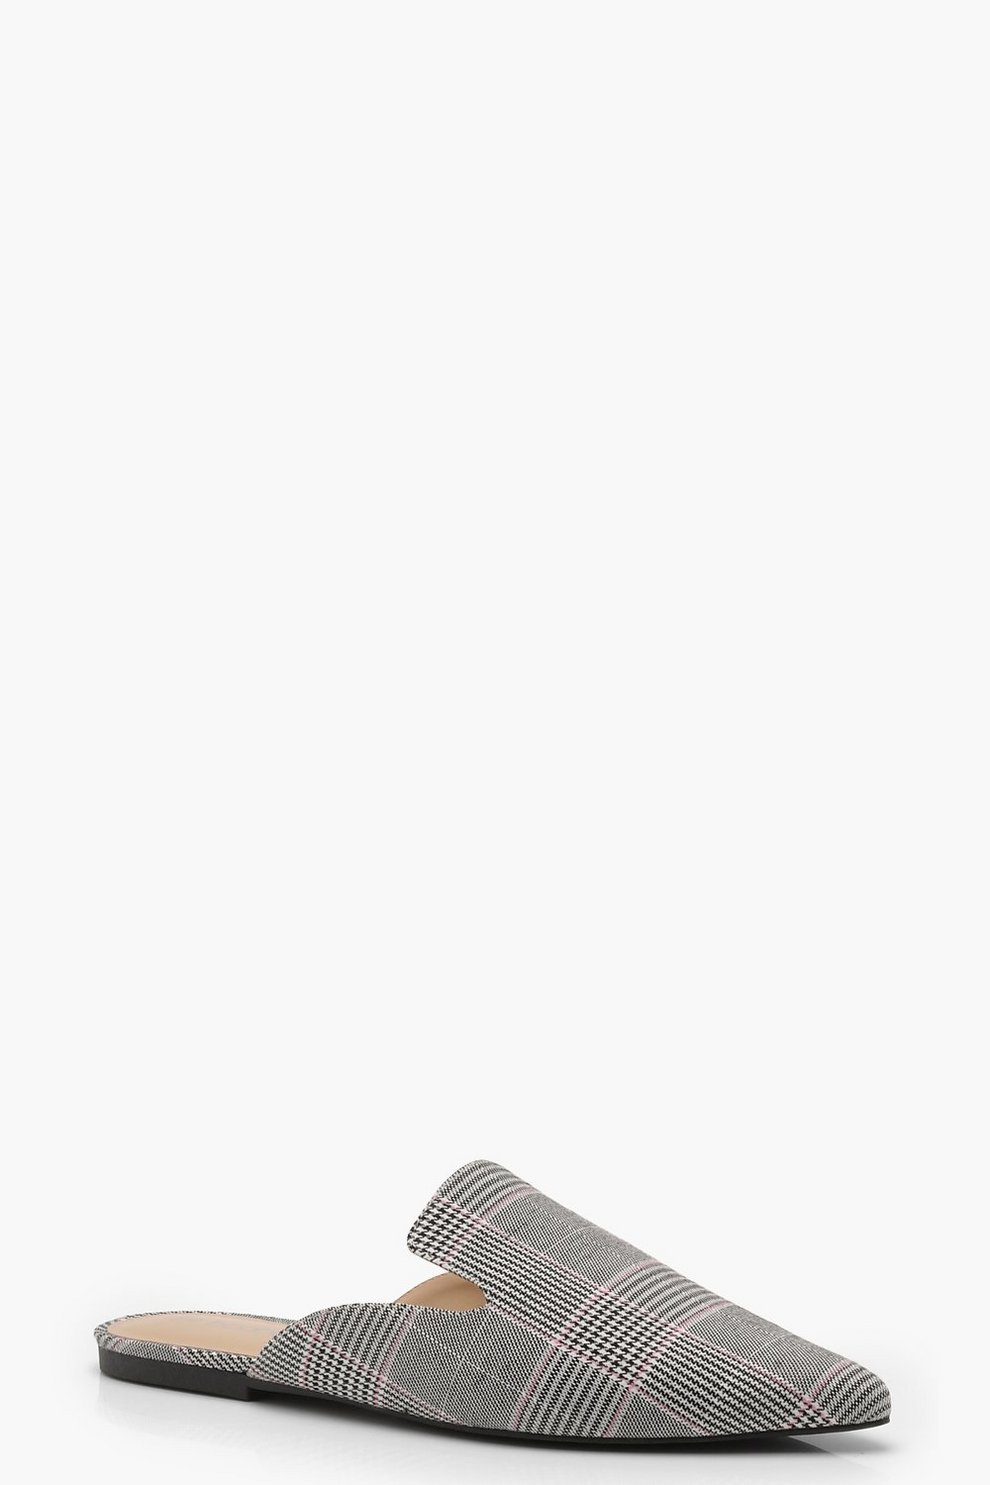 Finishline Barato Real Pointed Check Mules Vendible 3mp7nskb